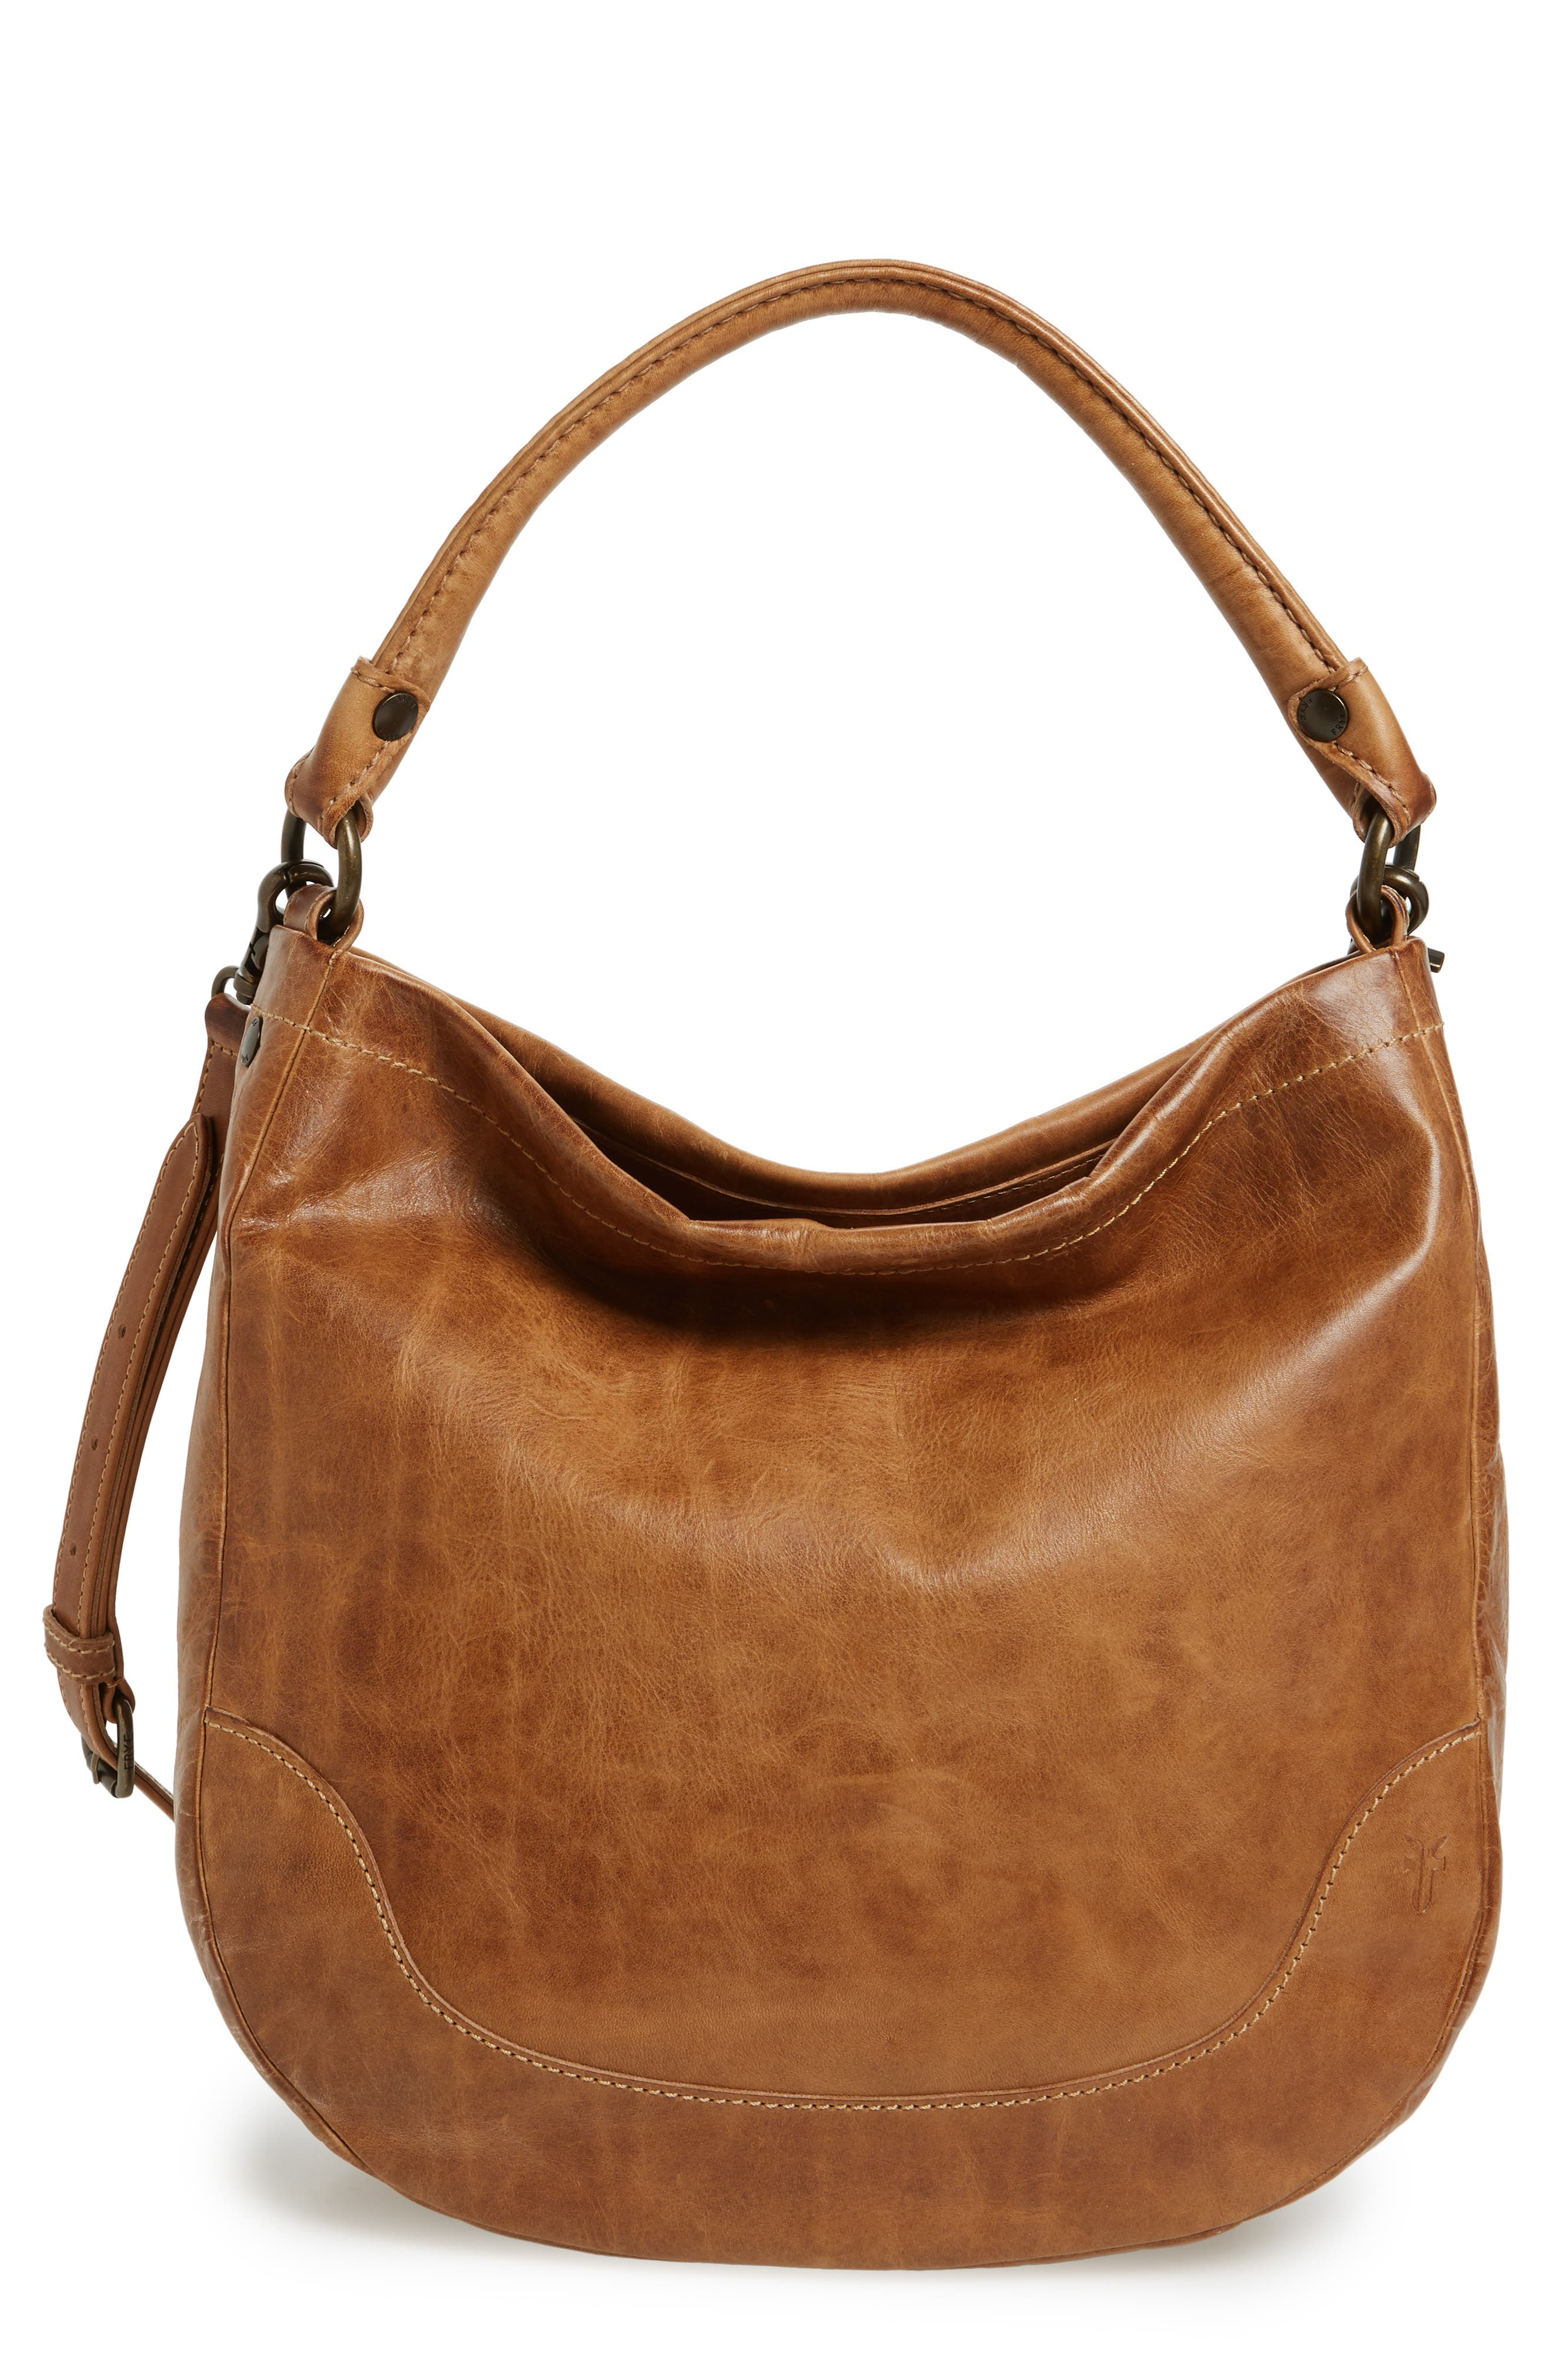 17109c9d4bf11a Hobo Bags & Purses | Nordstrom